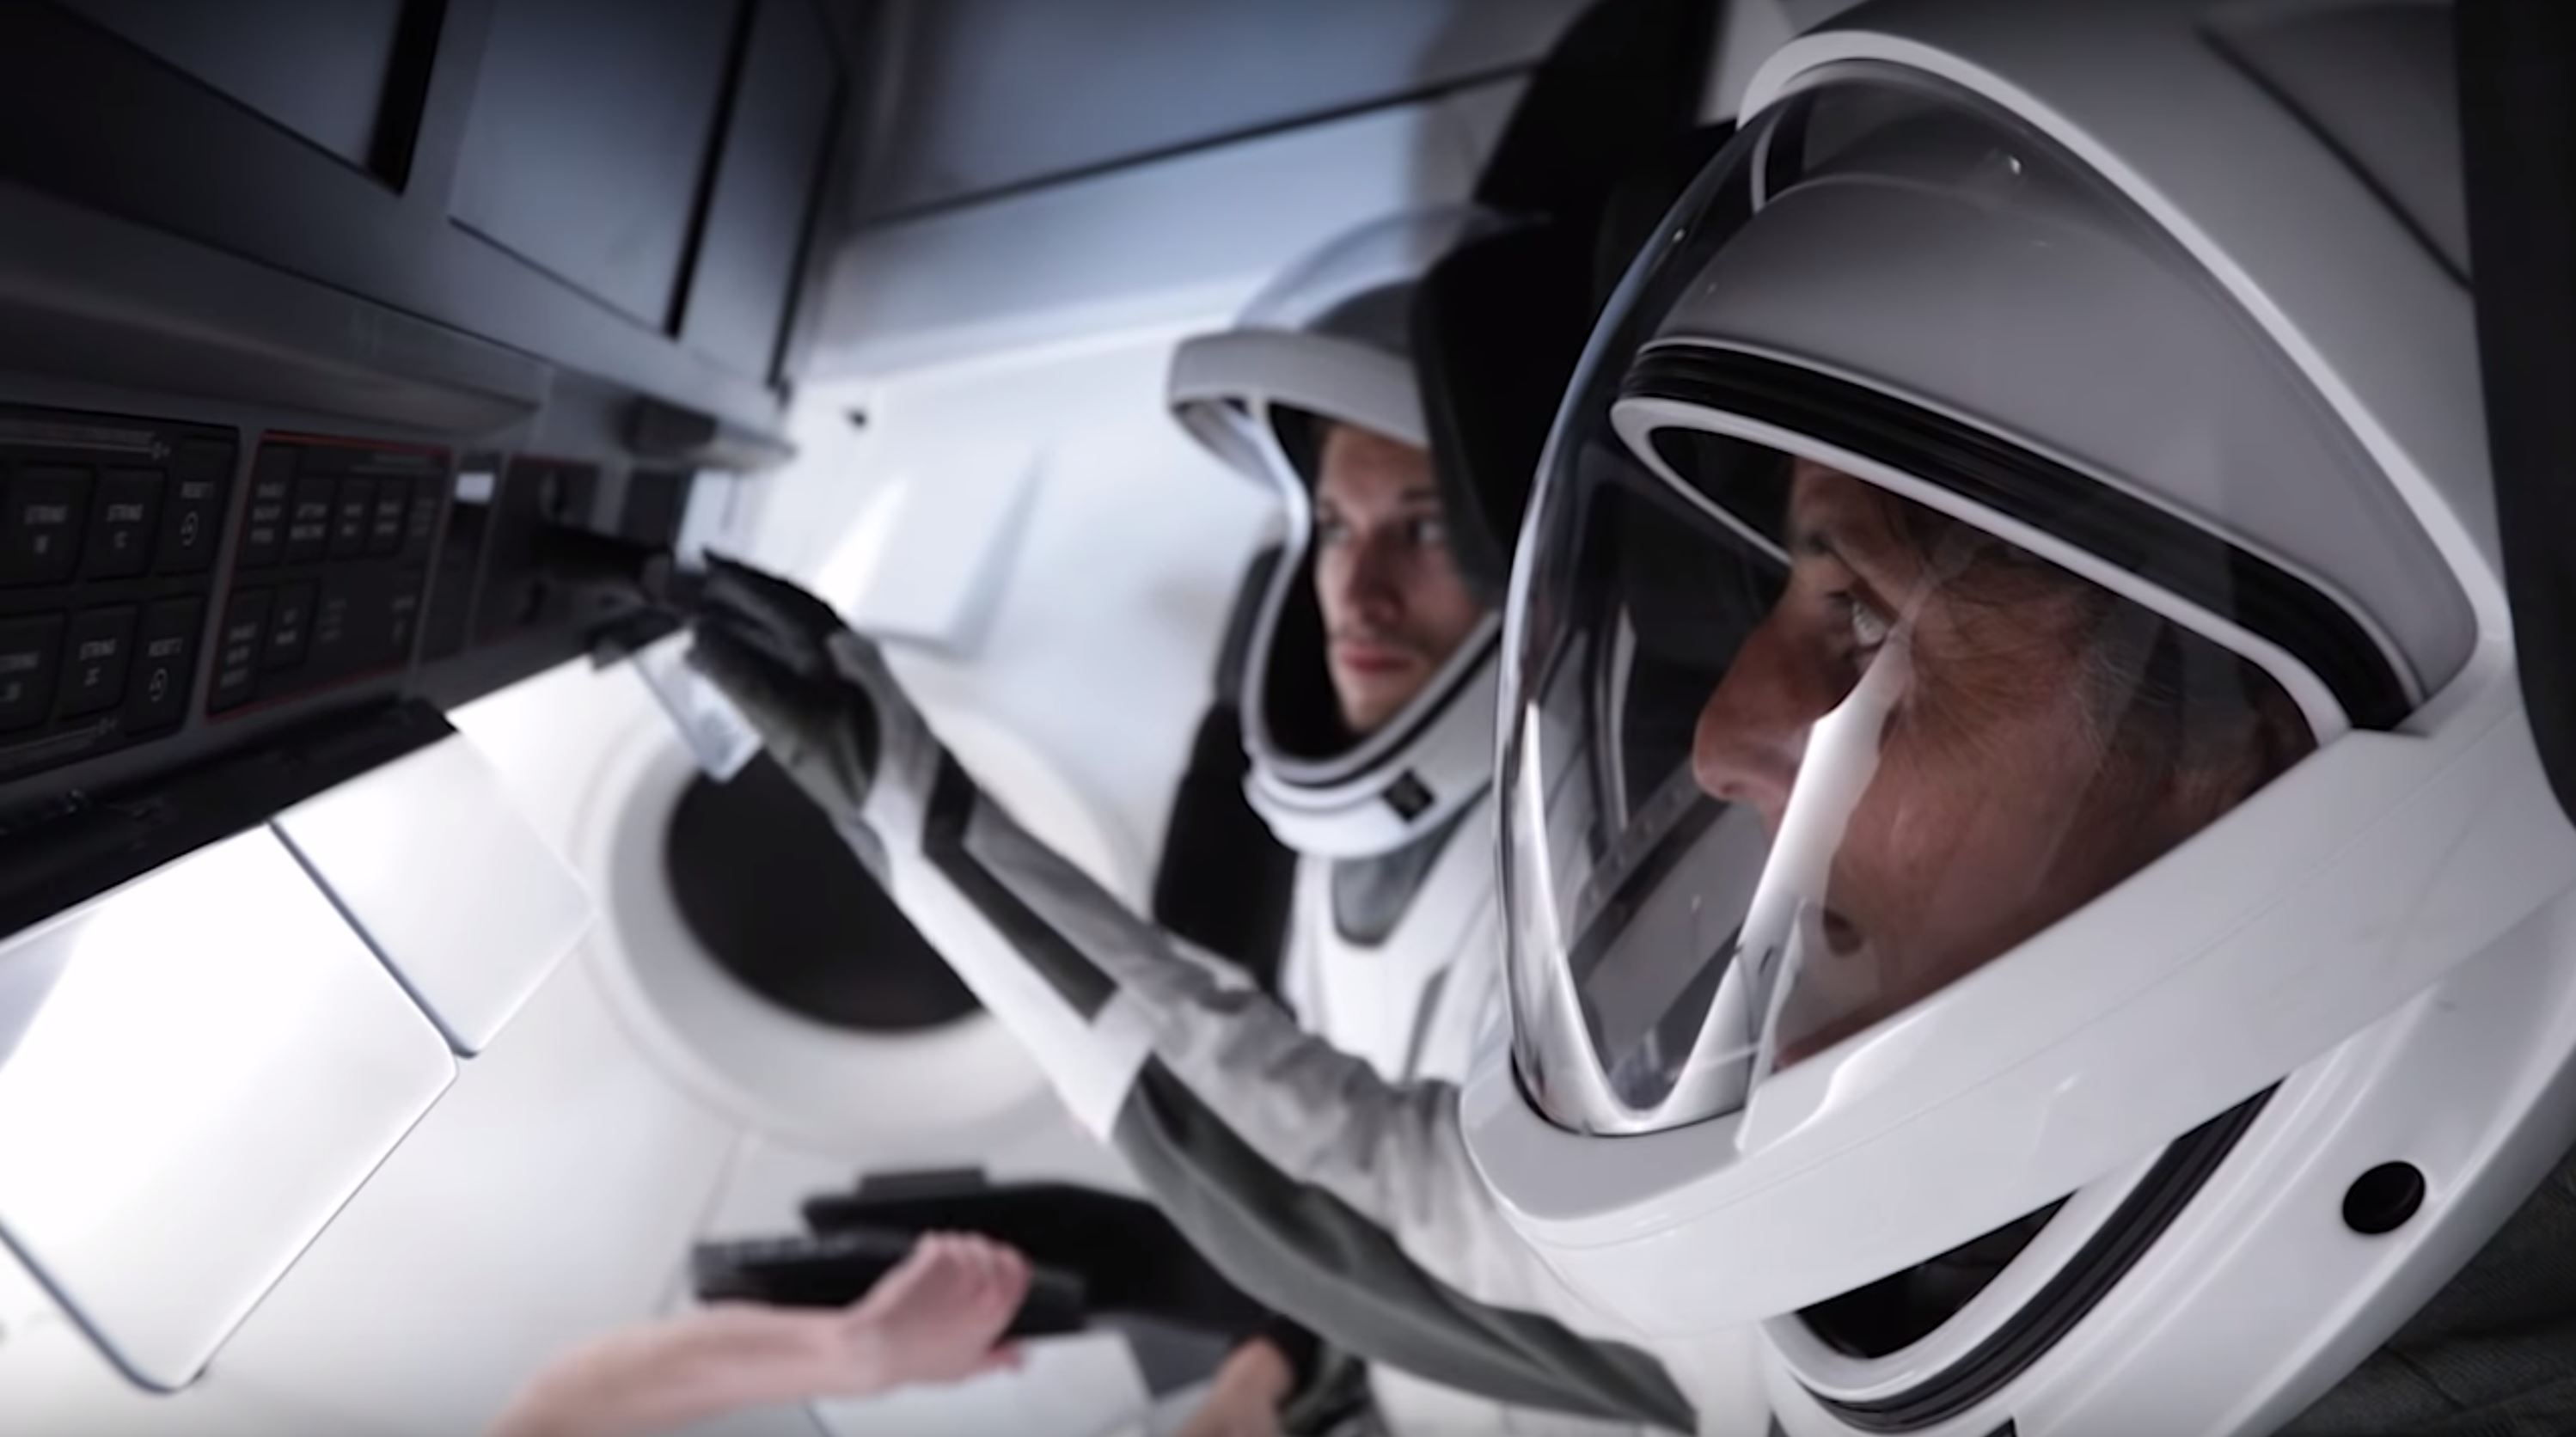 SpaceX spacesuit testing (SpaceX) 1